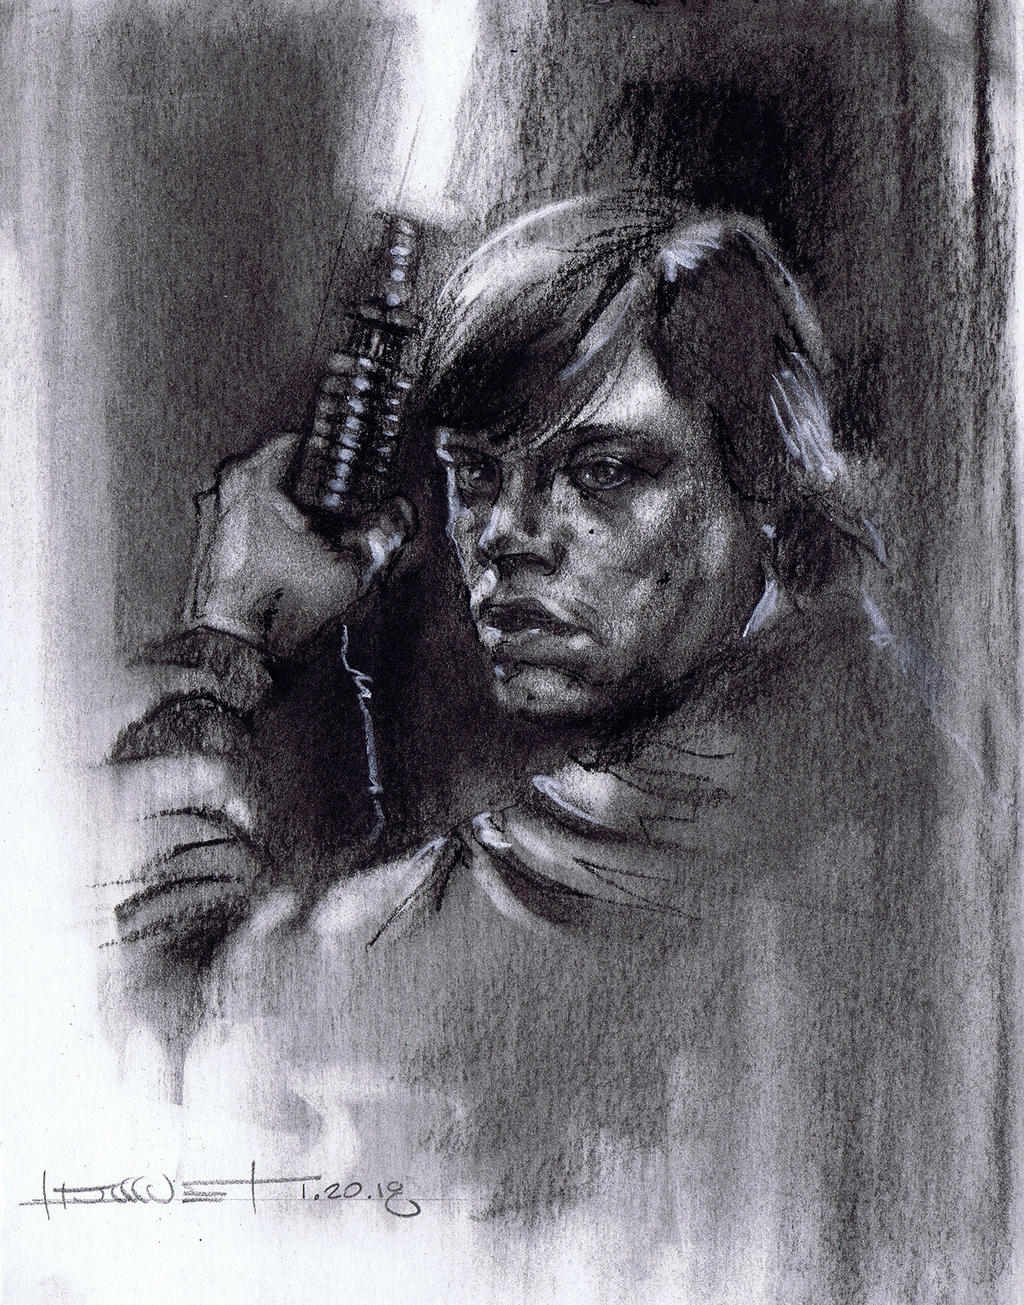 Luke Skywalker Charcoal Study by Fusciart